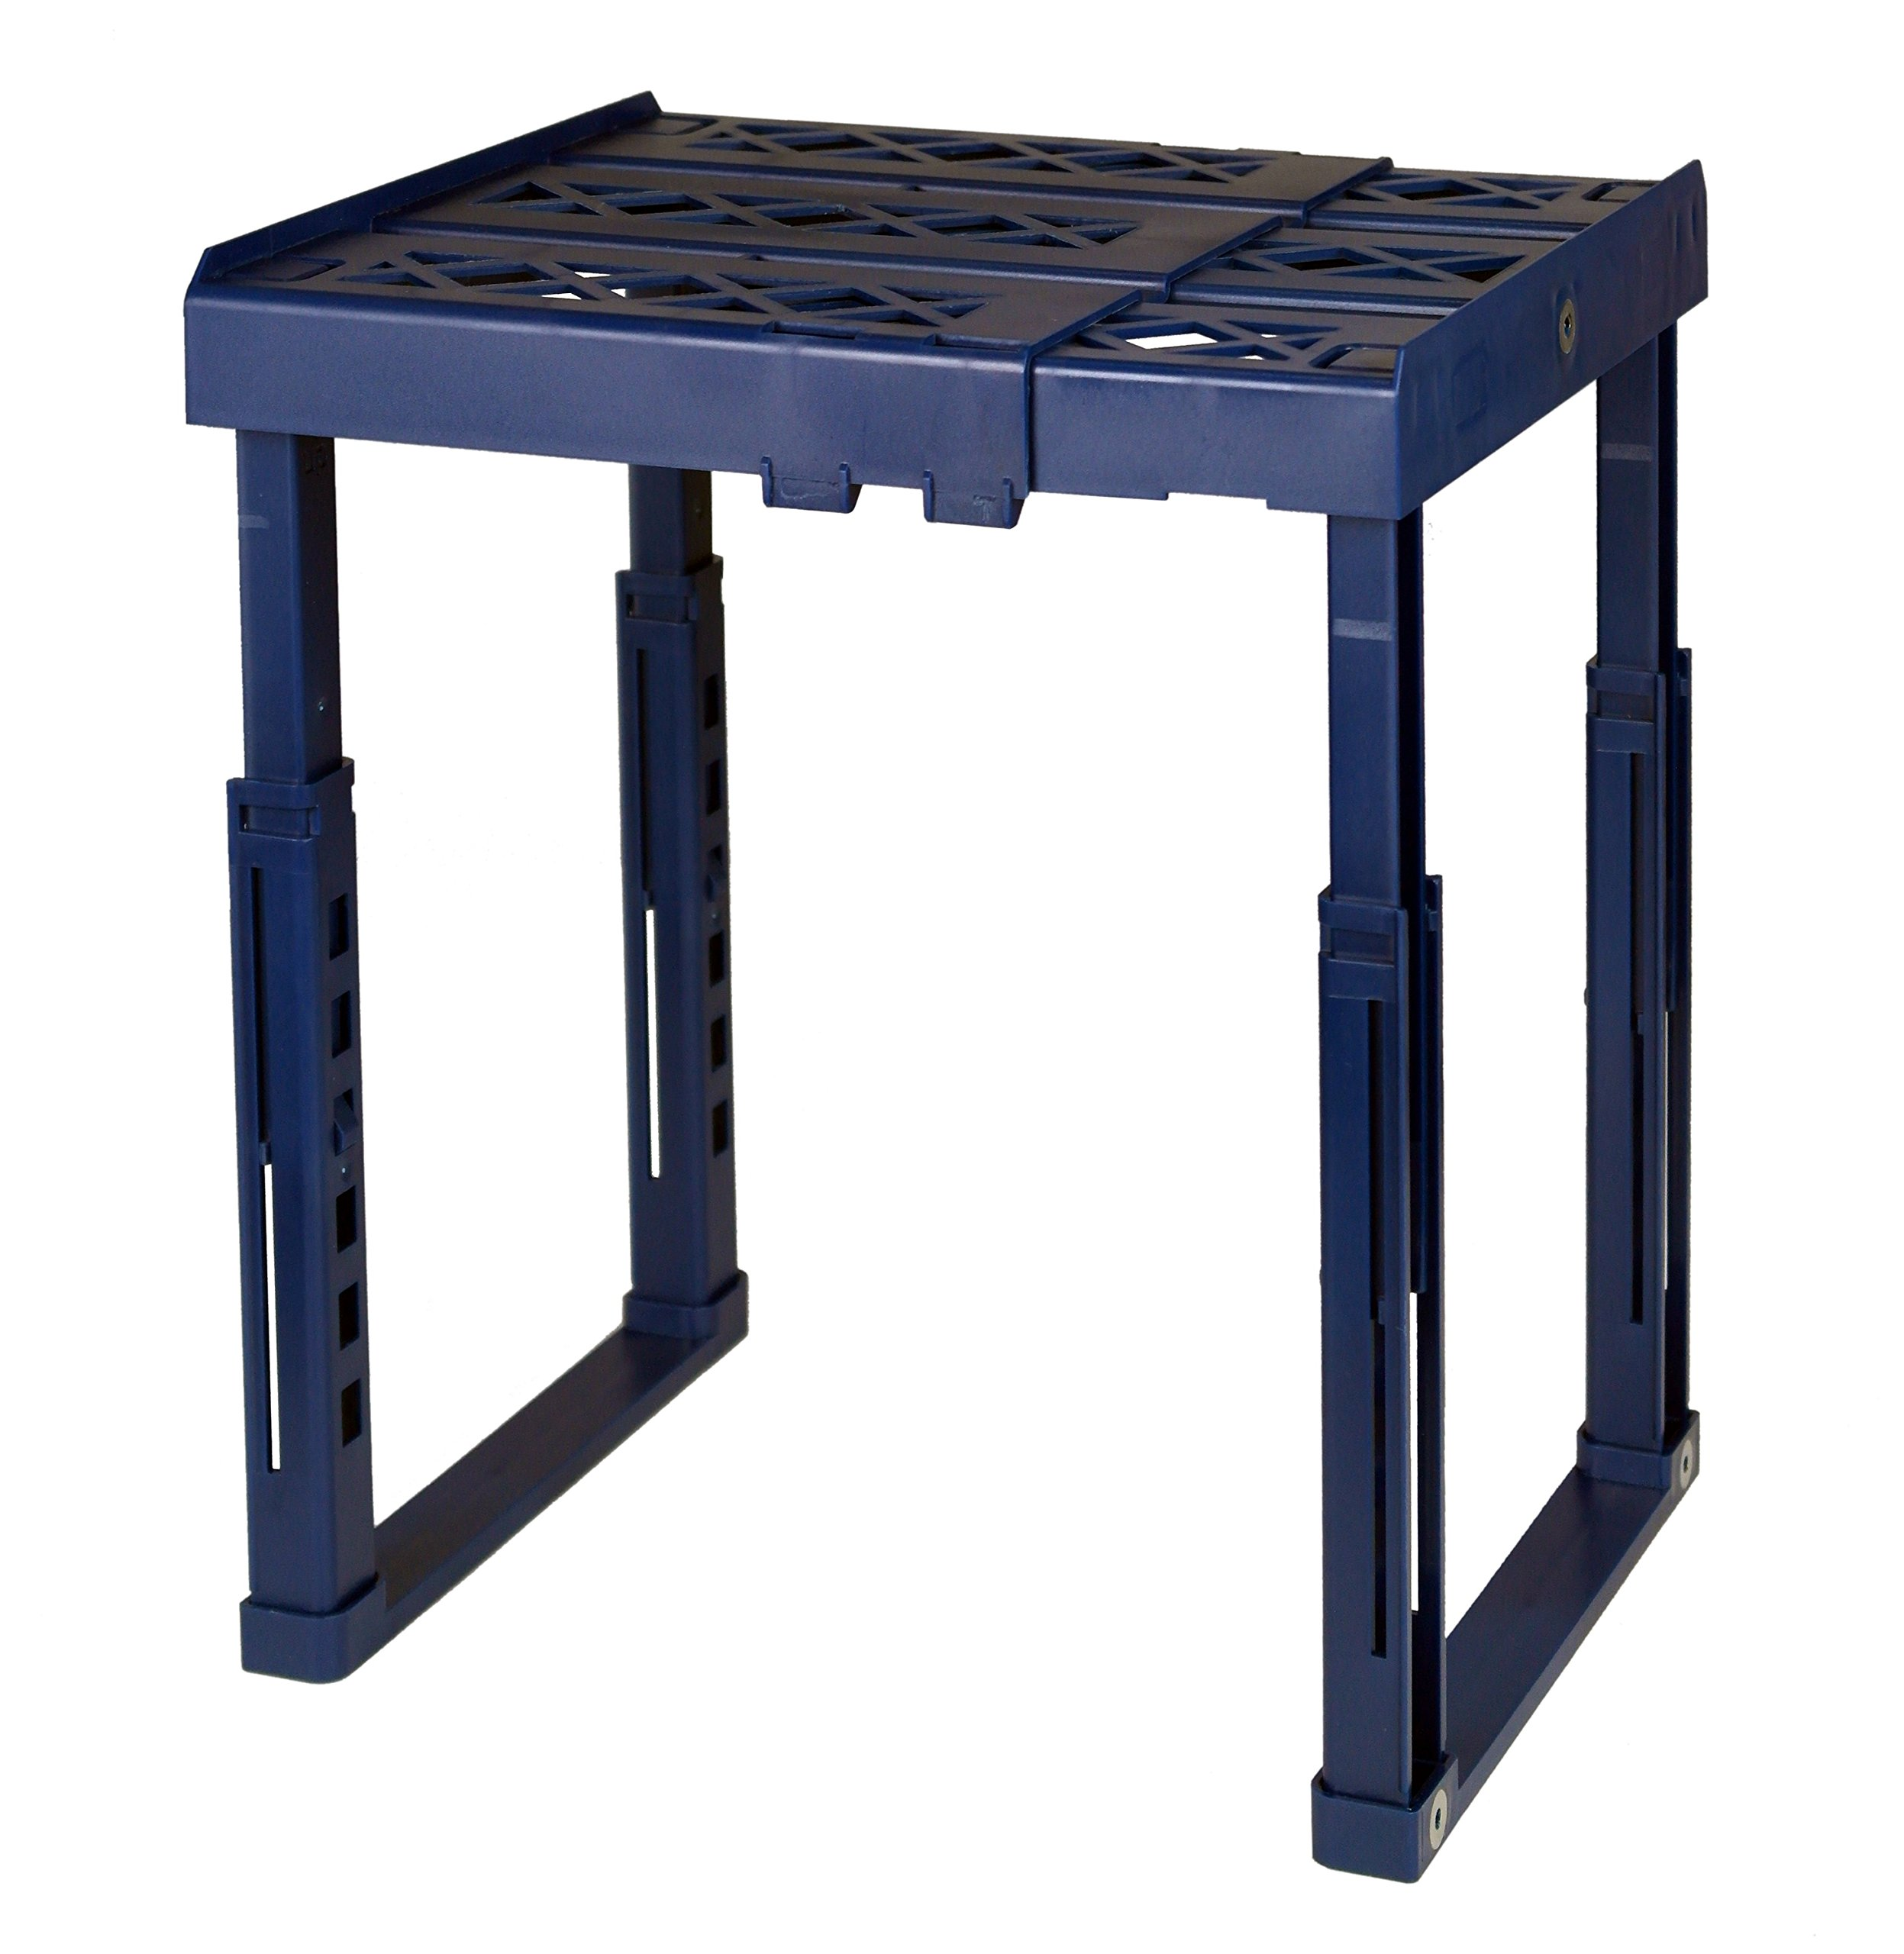 Tools for School Locker Shelf. Adjustable Width 8'' - 12 1/2'' and Height 9 3/4'' - 14''. Stackable and Heavy Duty. (Blue, Single) by Tools for School